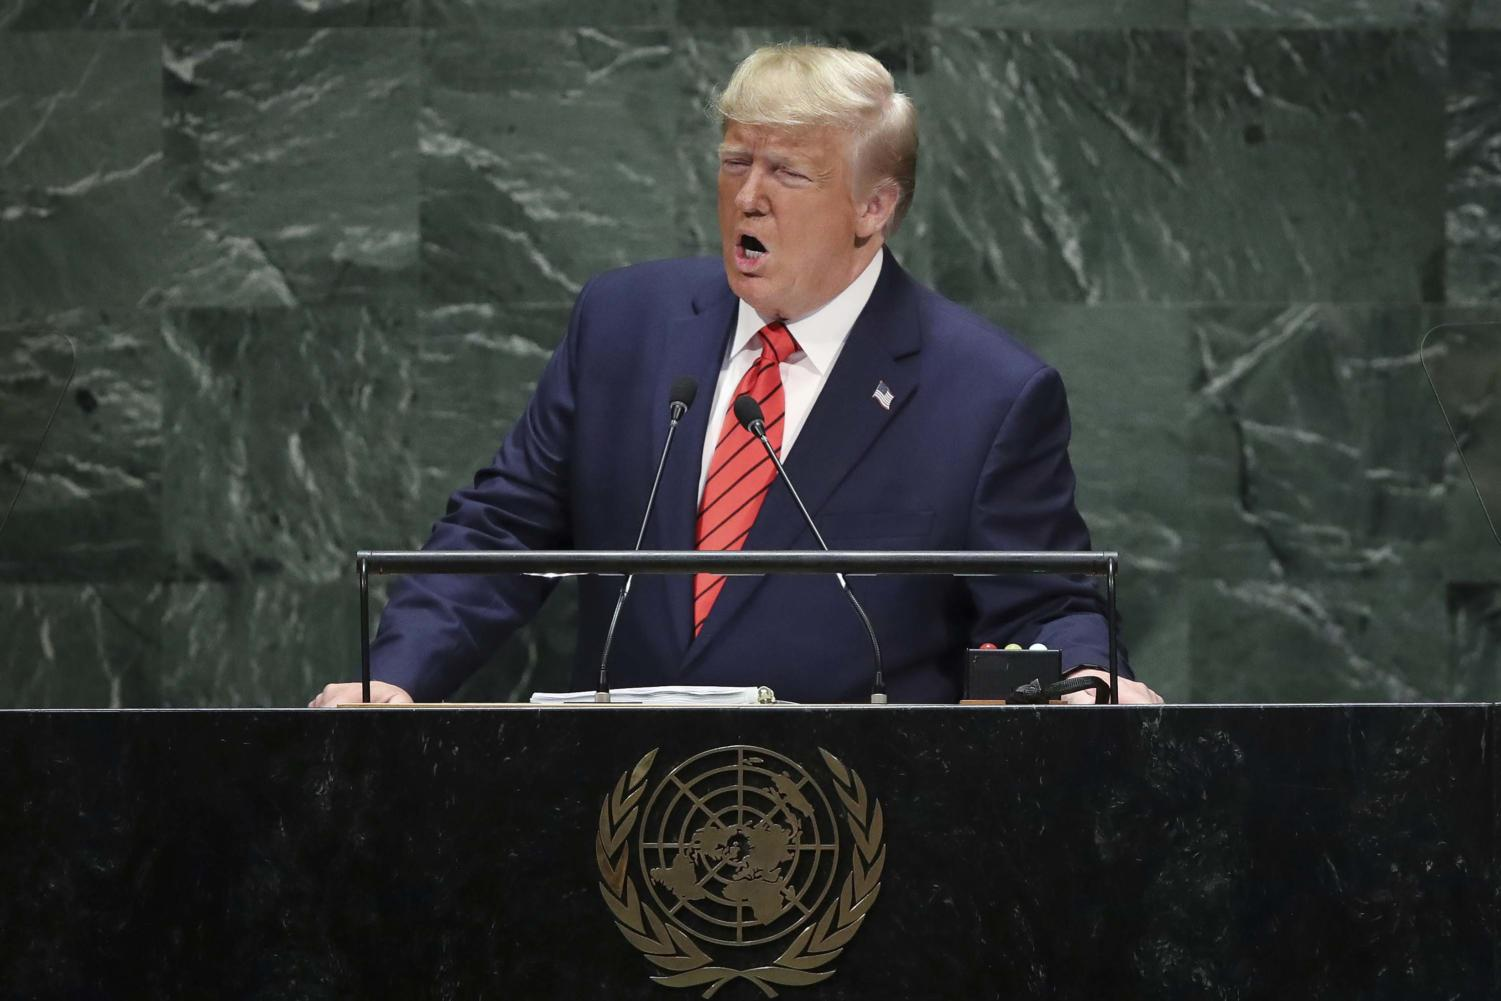 President Donald Trump addresses the United Nations General Assembly at U.N. headquarters on Tuesday in New York City. World leaders from across the globe are gathered at the 74th session of the U.N. General Assembly, amid crises ranging from climate change to possible conflict between Iran and the United States.